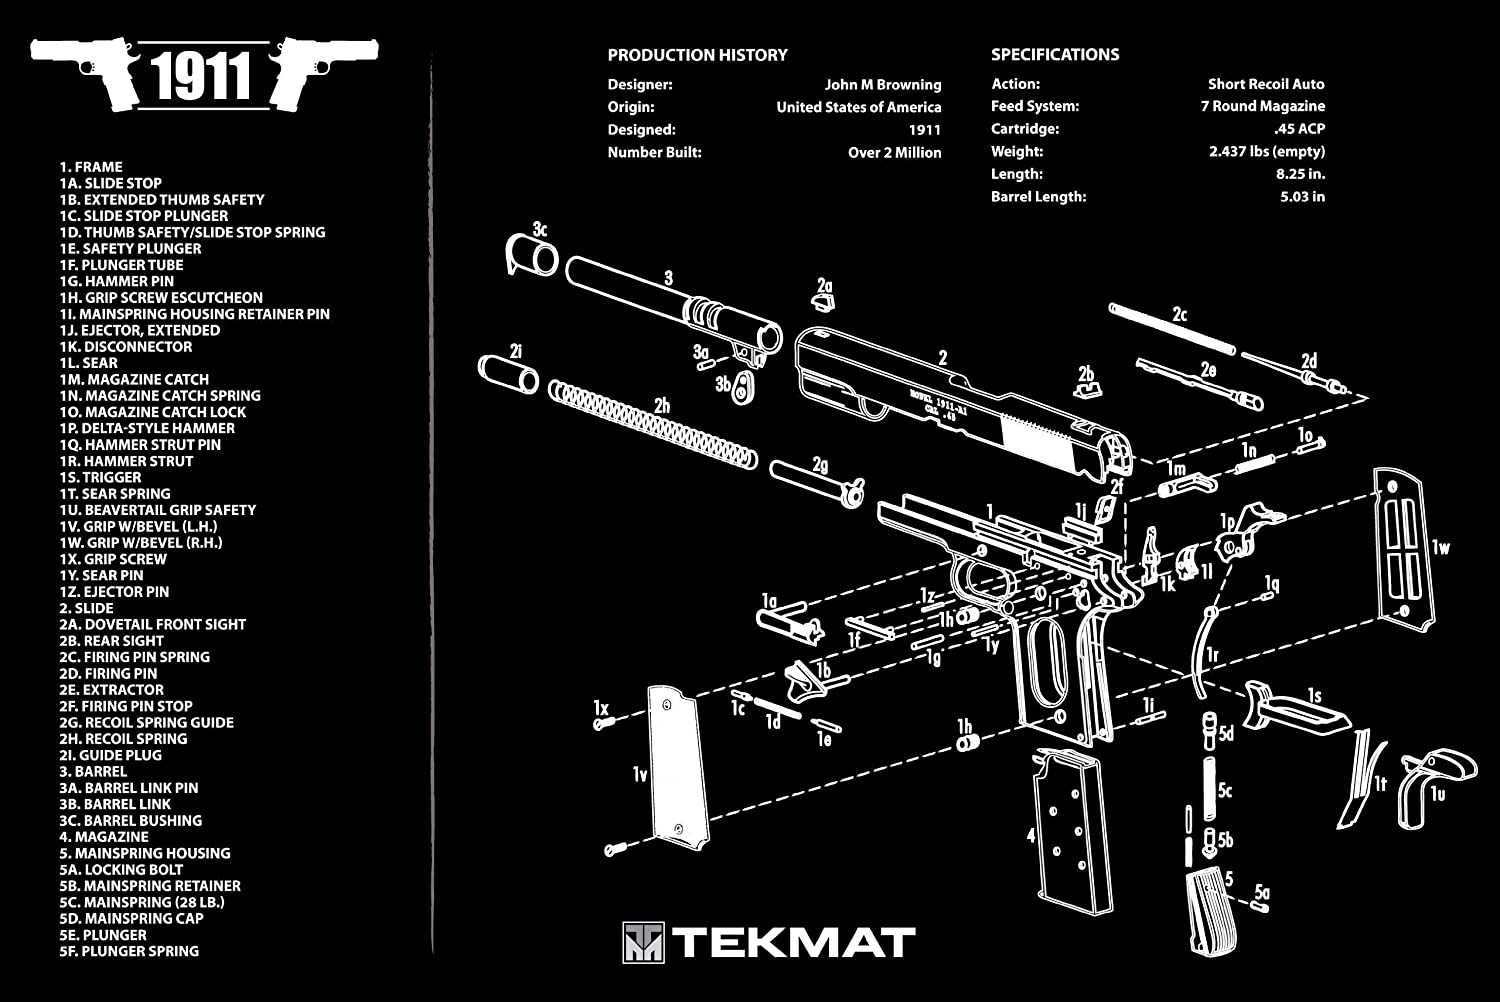 Ultimate Arms Gear 1911 Pistol Handgun Gunsmith And Parts Diagram Wiring Schematic Armorers Large Poster Cleaning Work Tool Bench Gun Wall Decoration Hang Up Print Picture Photo Schematics